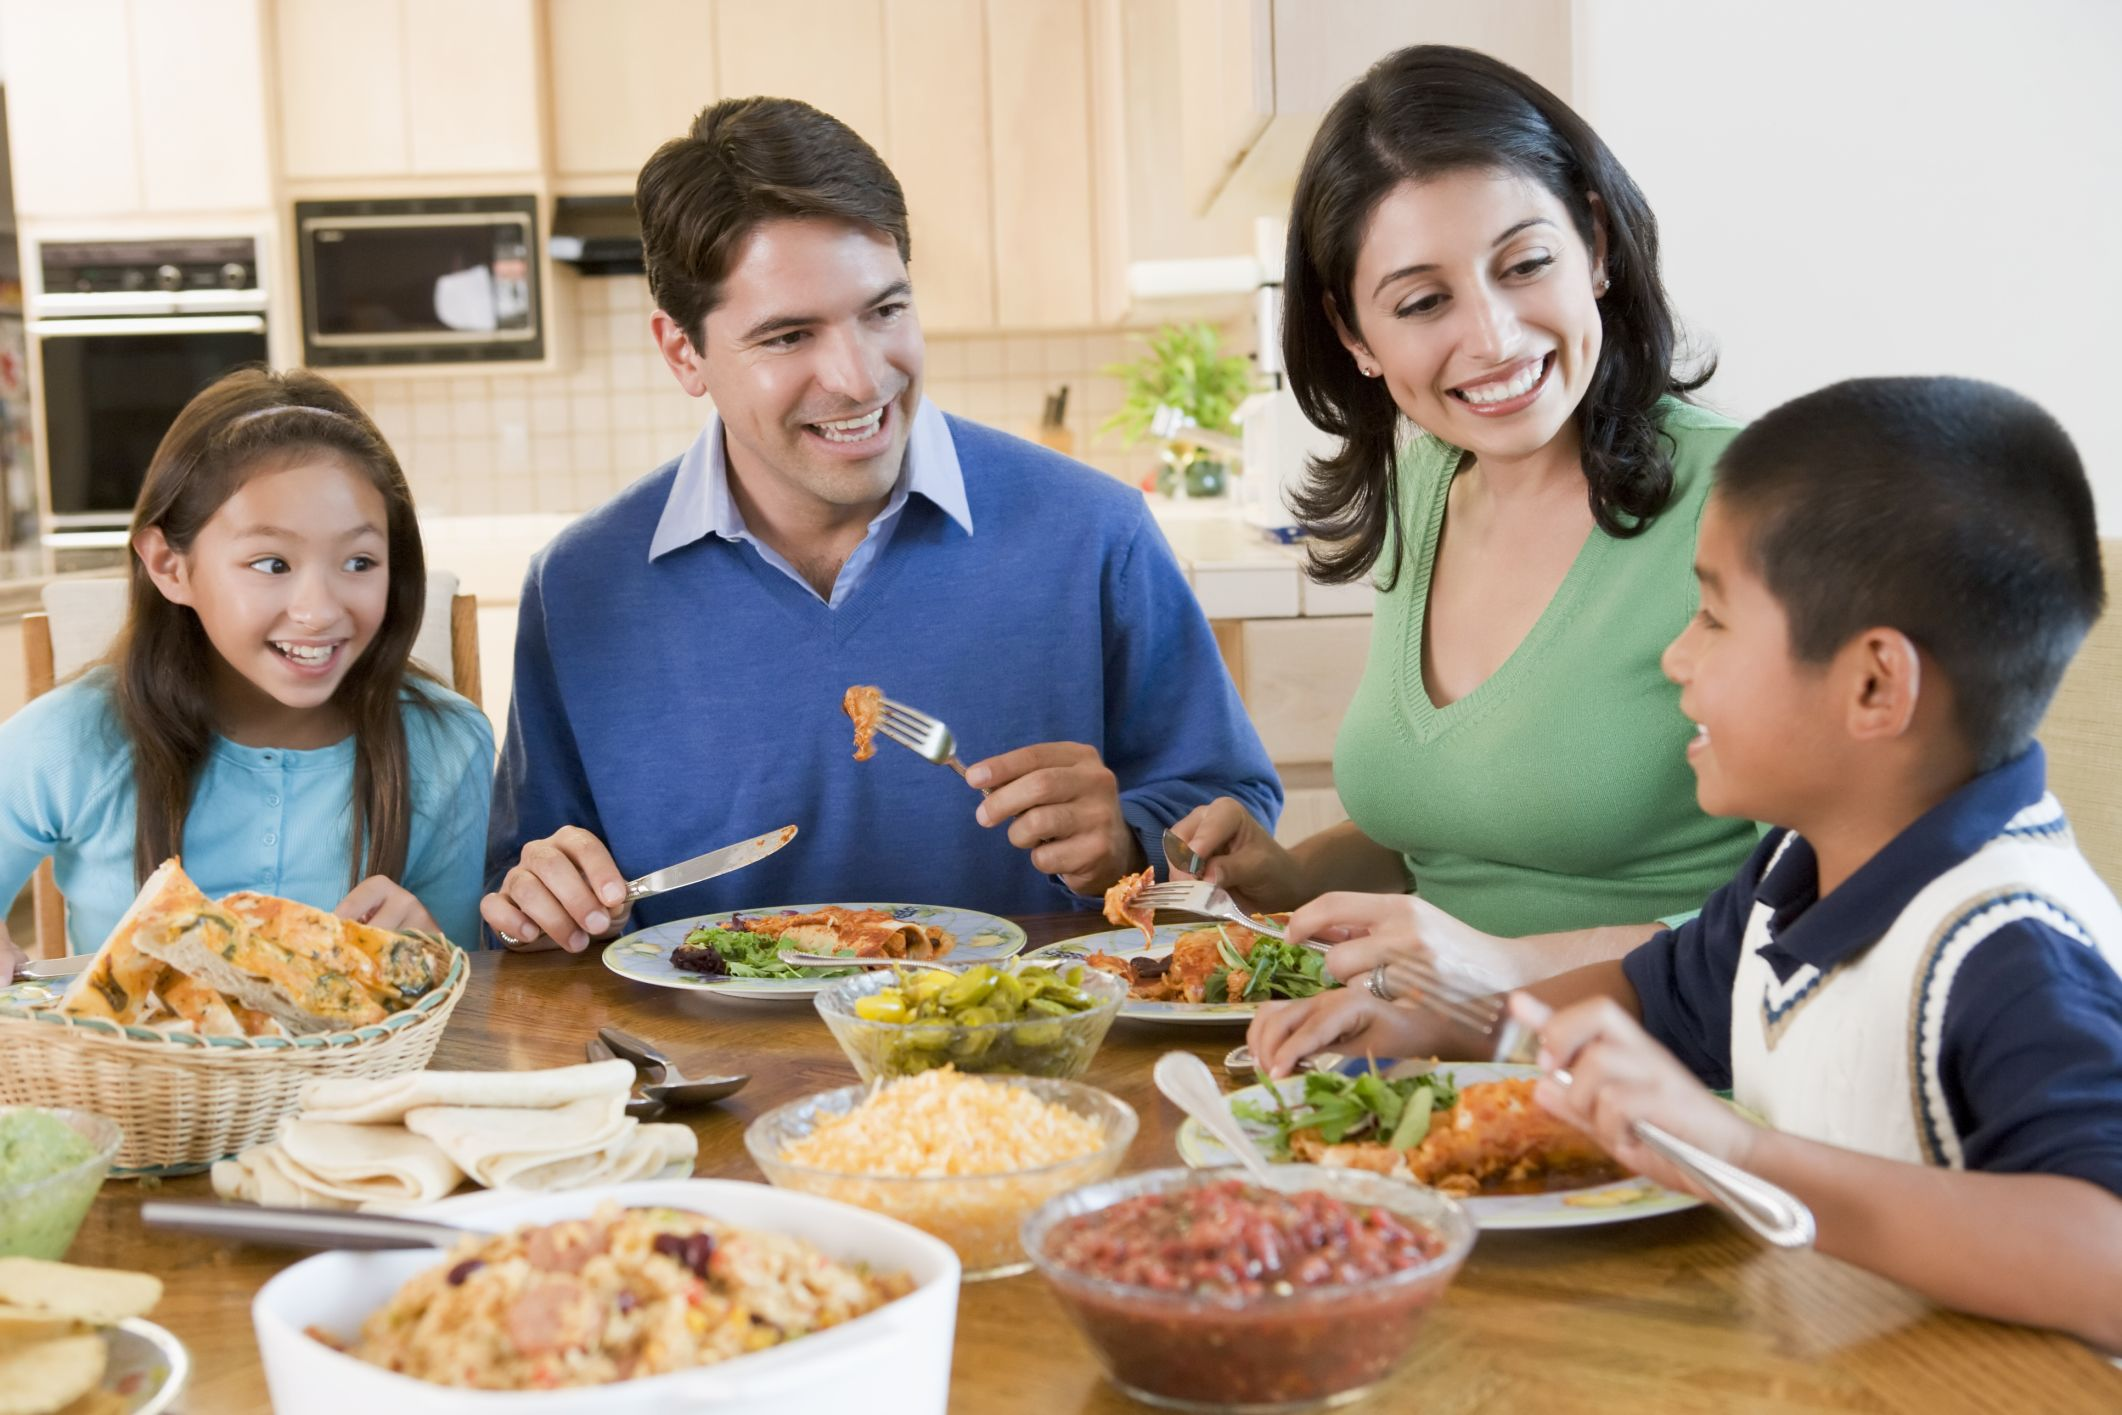 Want to Lose Weight? Eat at Home - Sharecare